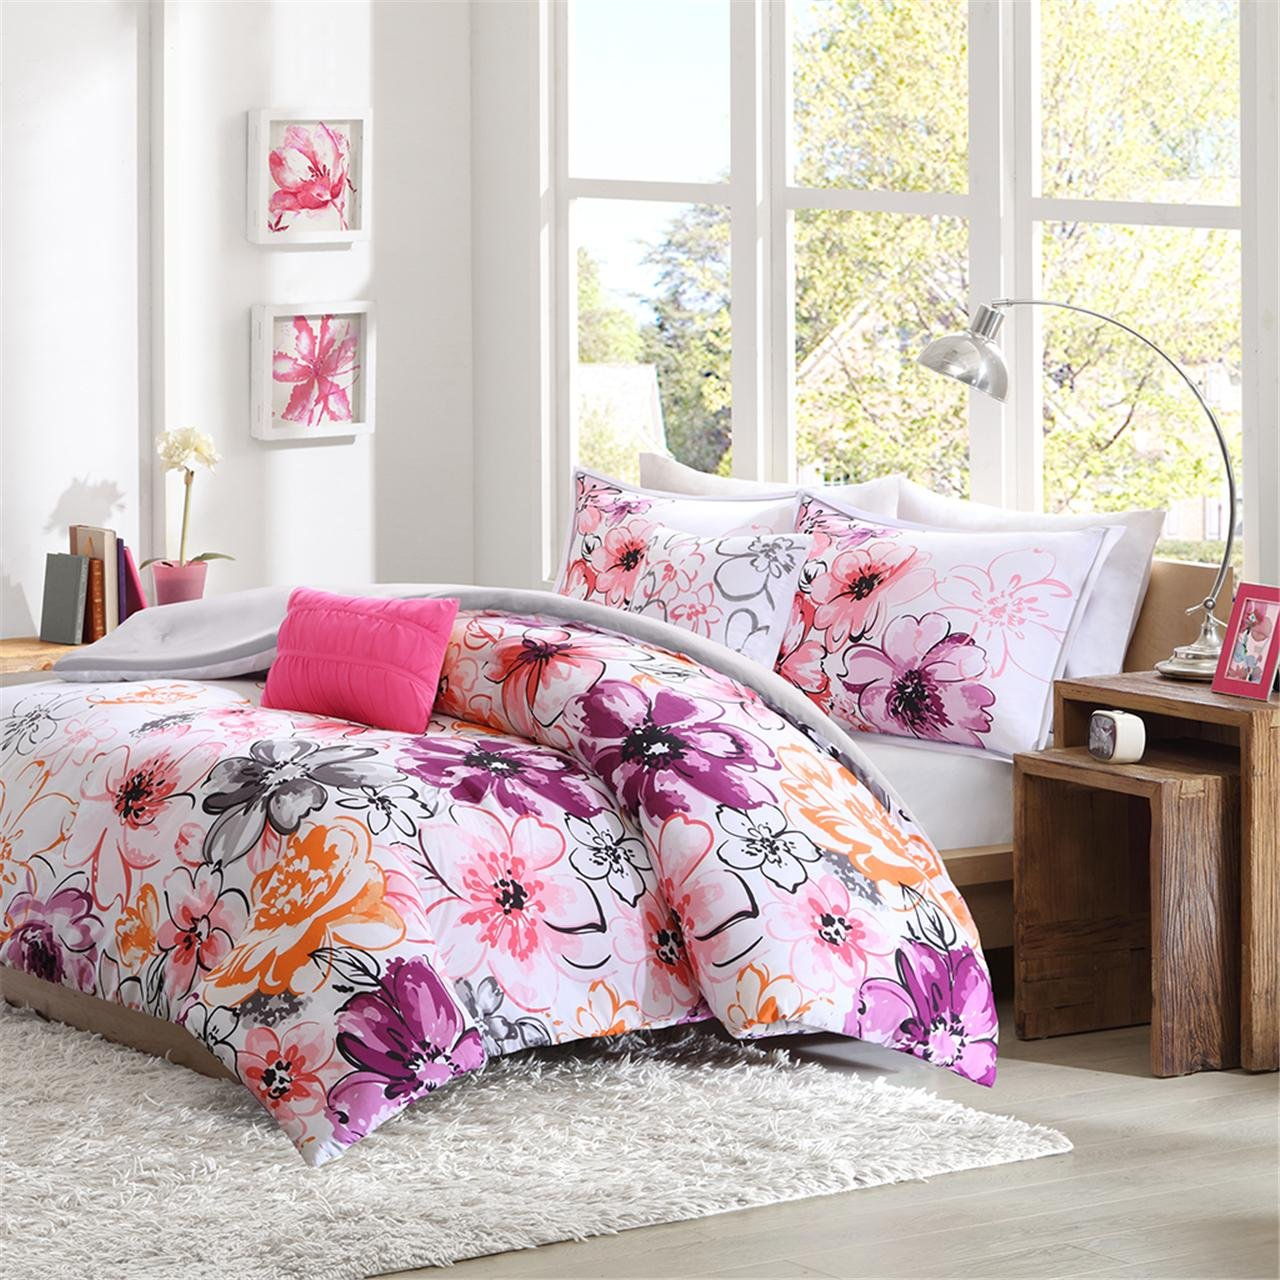 Intelligent Design Olivia 5 Piece Comforter Set, Full/Queen, Pink